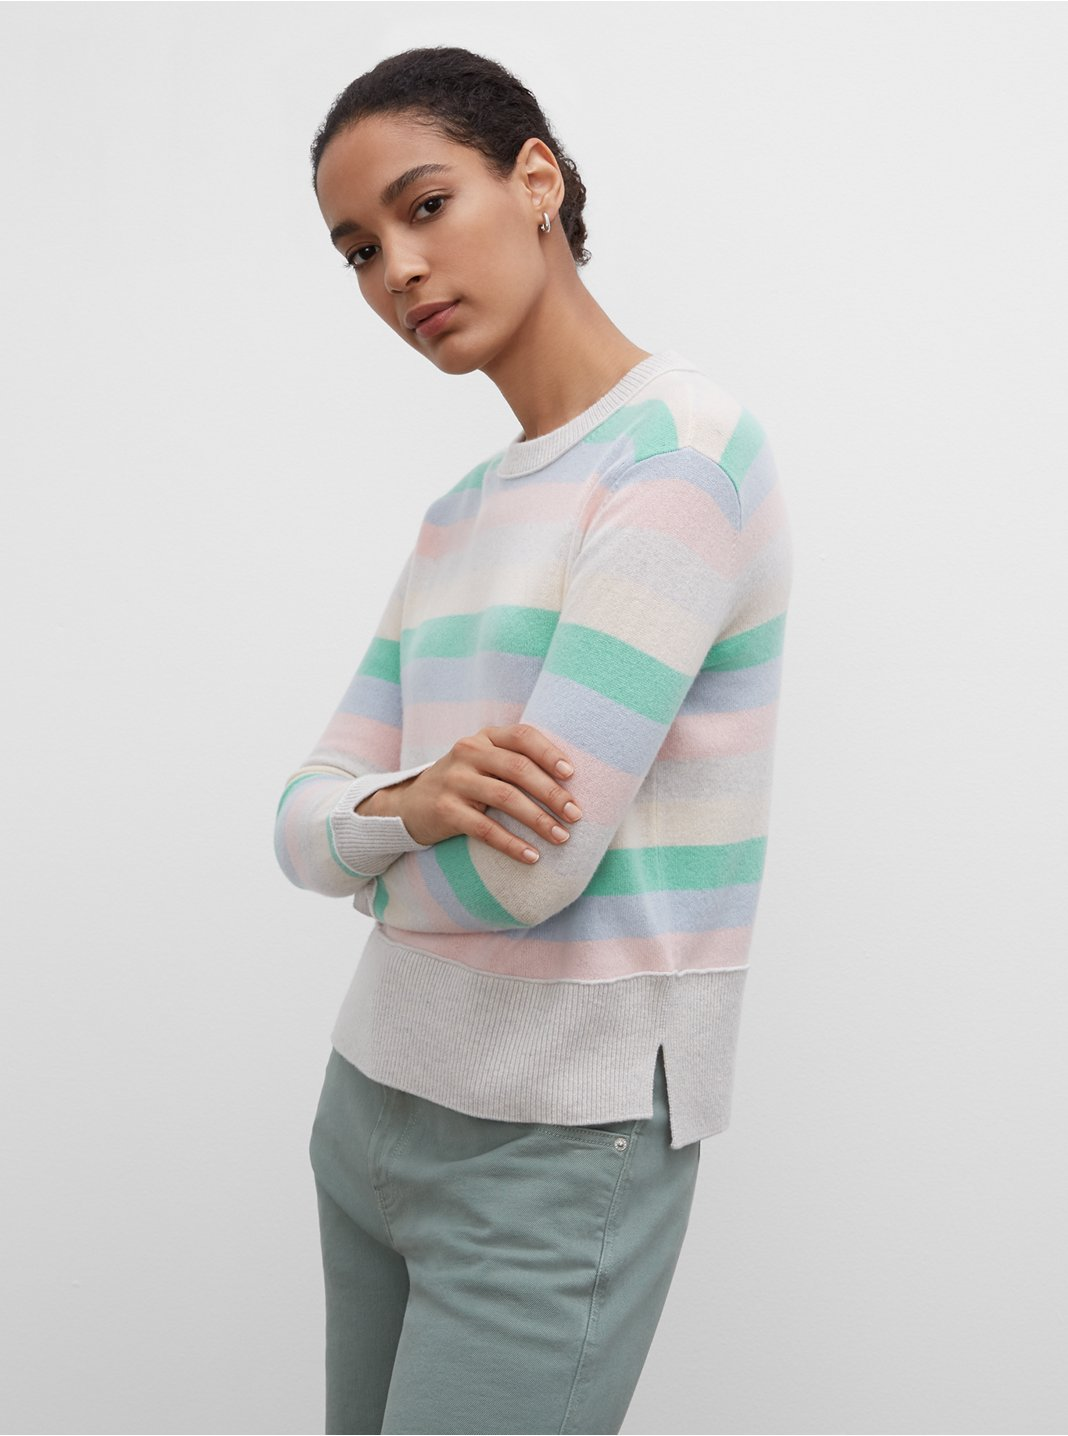 Everywear Cashmere Crewneck Sweater